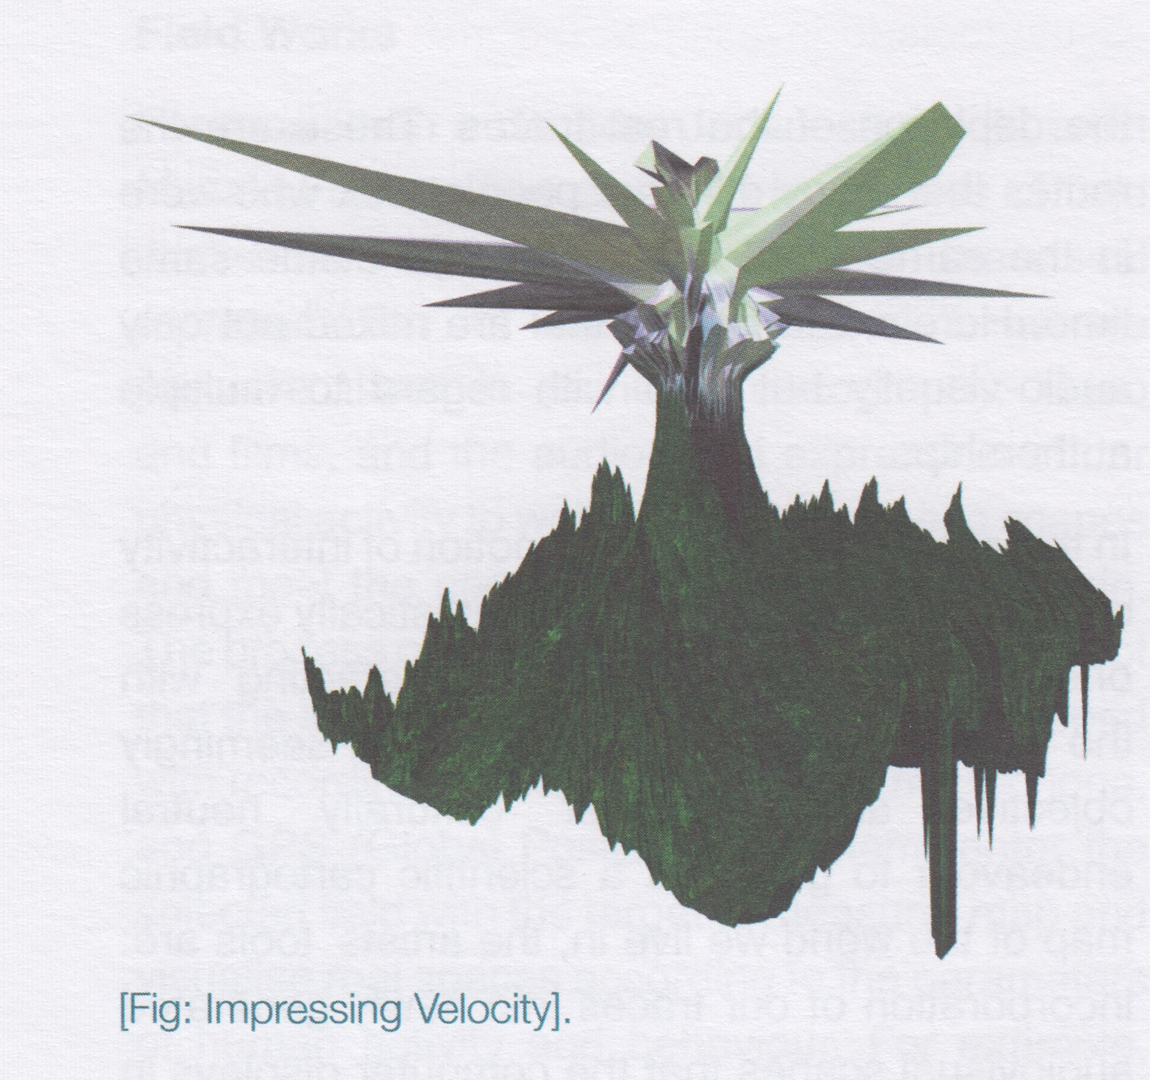 ©ISEA2009: 15th International Symposium on Electronic Art, Yvonne Spielmann, Mapping Scapes of Sound and Vision (Notes on Simultaneous Echoes, by Masaki Fujihata)